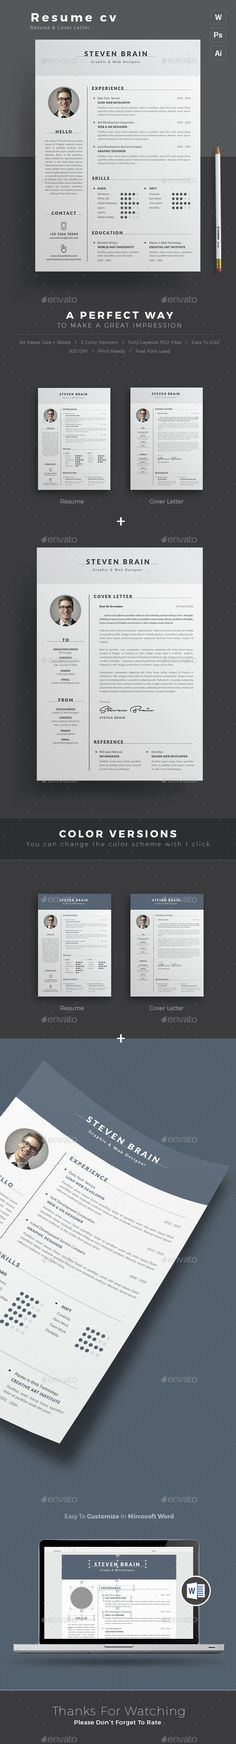 Resume Resume template download, Professional resume template - professional resume template download